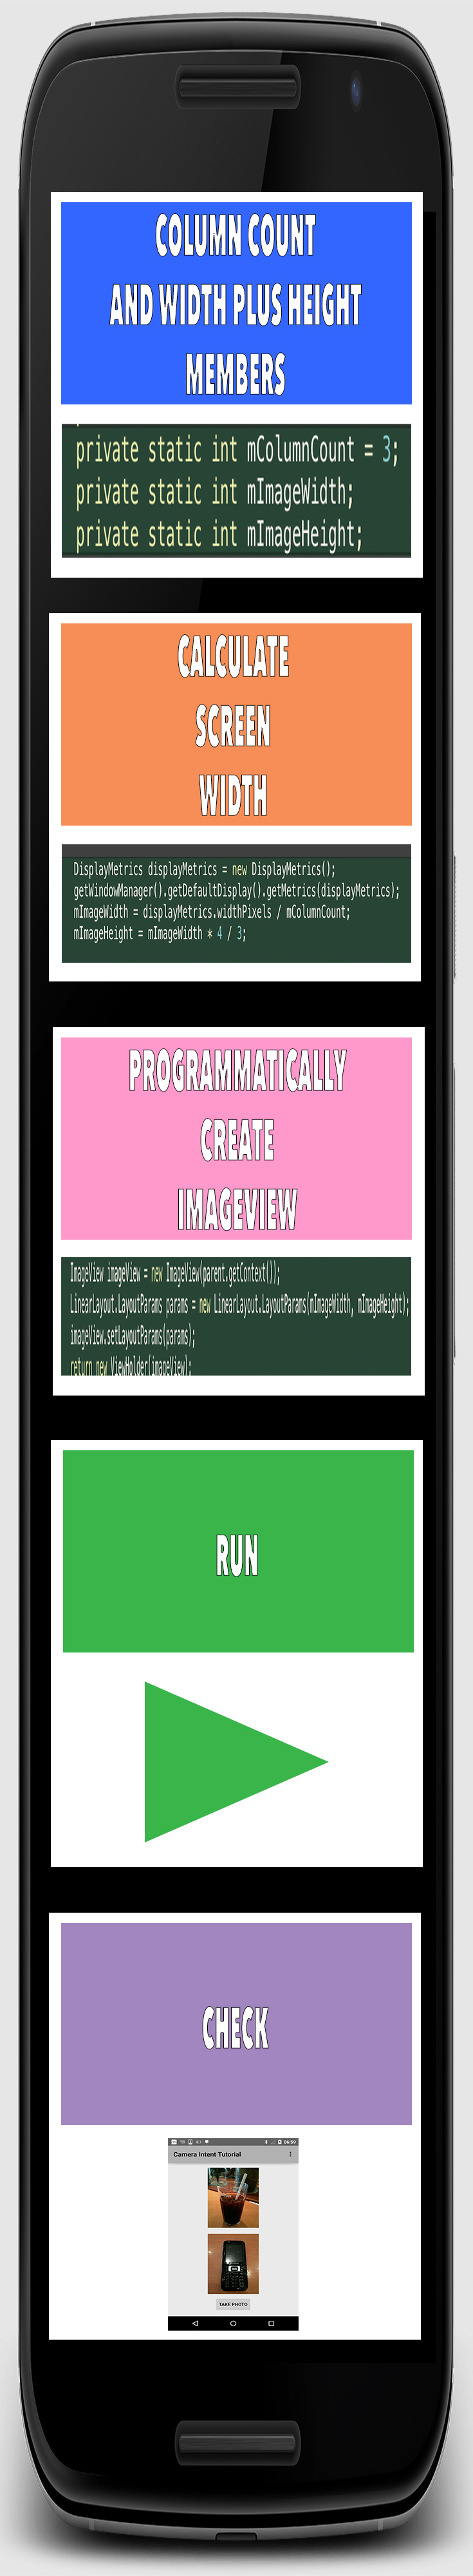 How to create an android gallery app using recyclerview part 5.